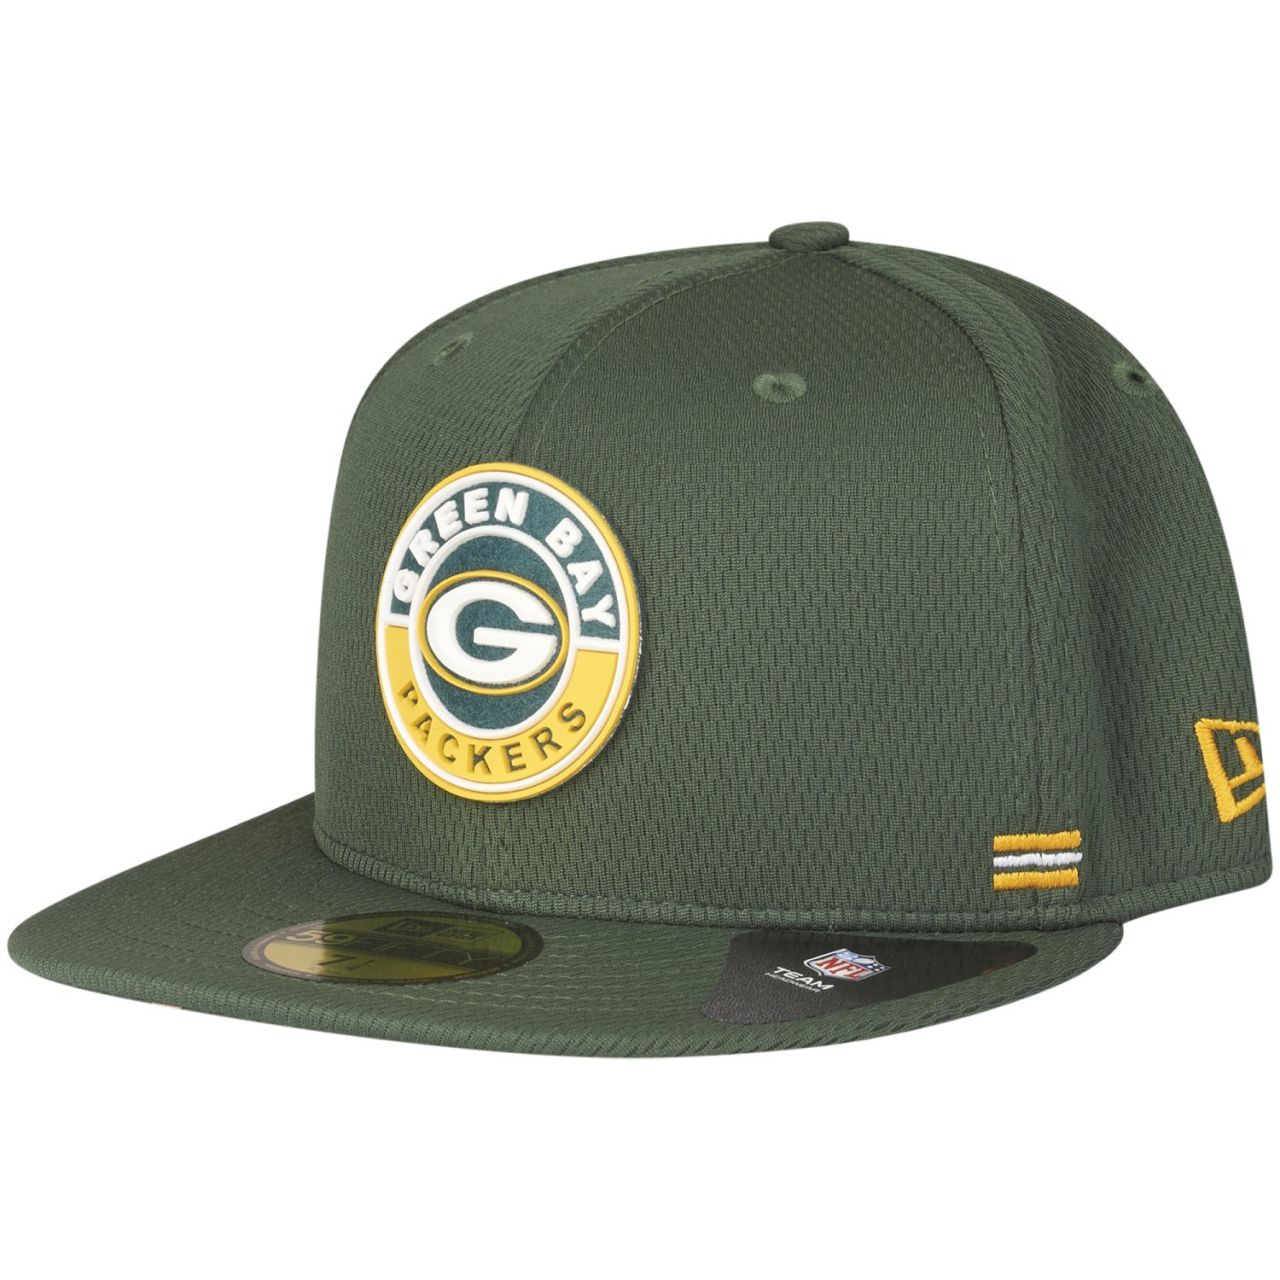 amfoo - New Era 59Fifty Fitted Cap - ROAD Green Bay Packers